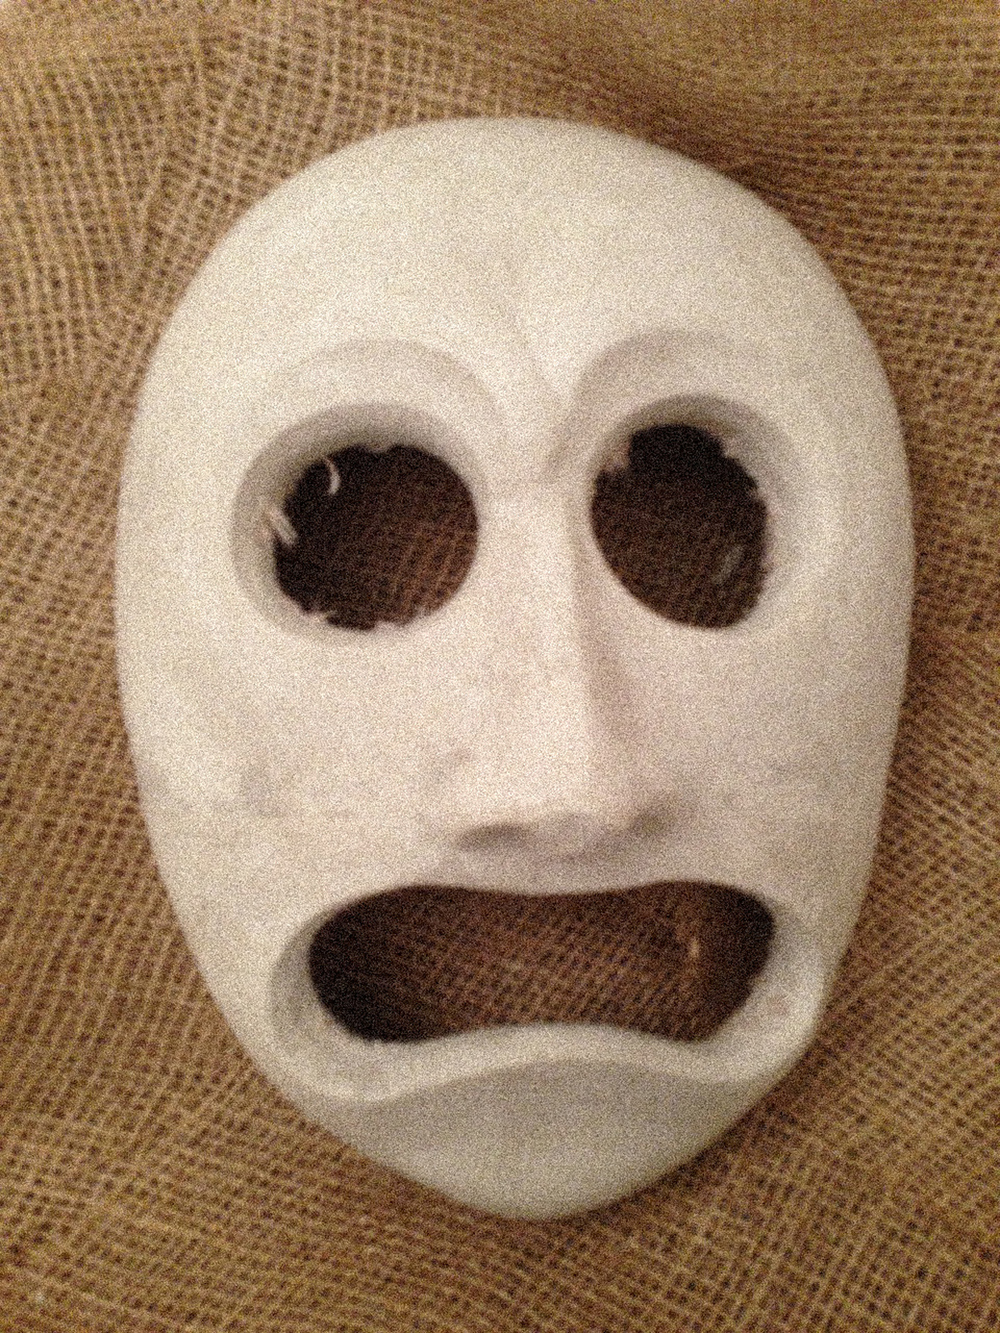 Plaster mask used by doorwoman